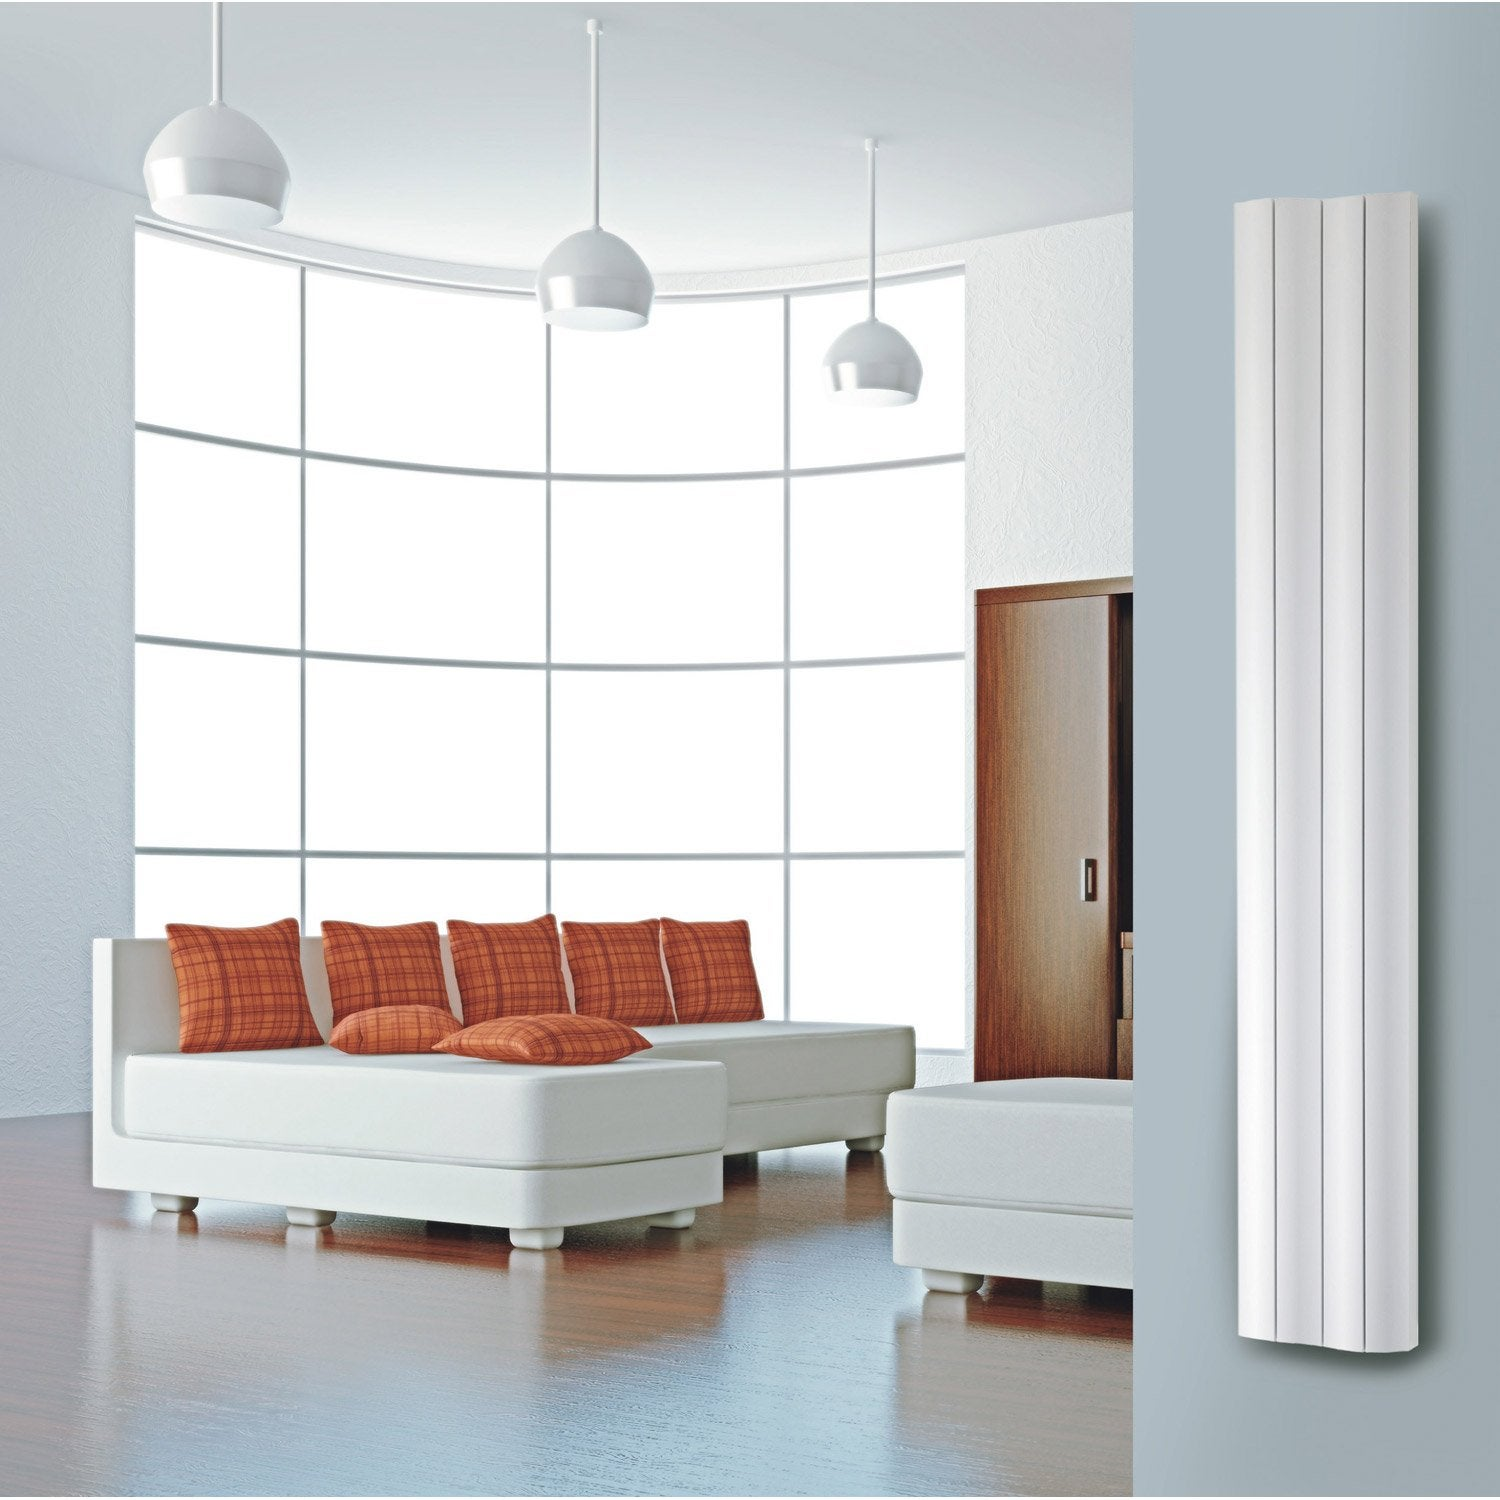 radiateur chauffage central double face blanc mat. Black Bedroom Furniture Sets. Home Design Ideas